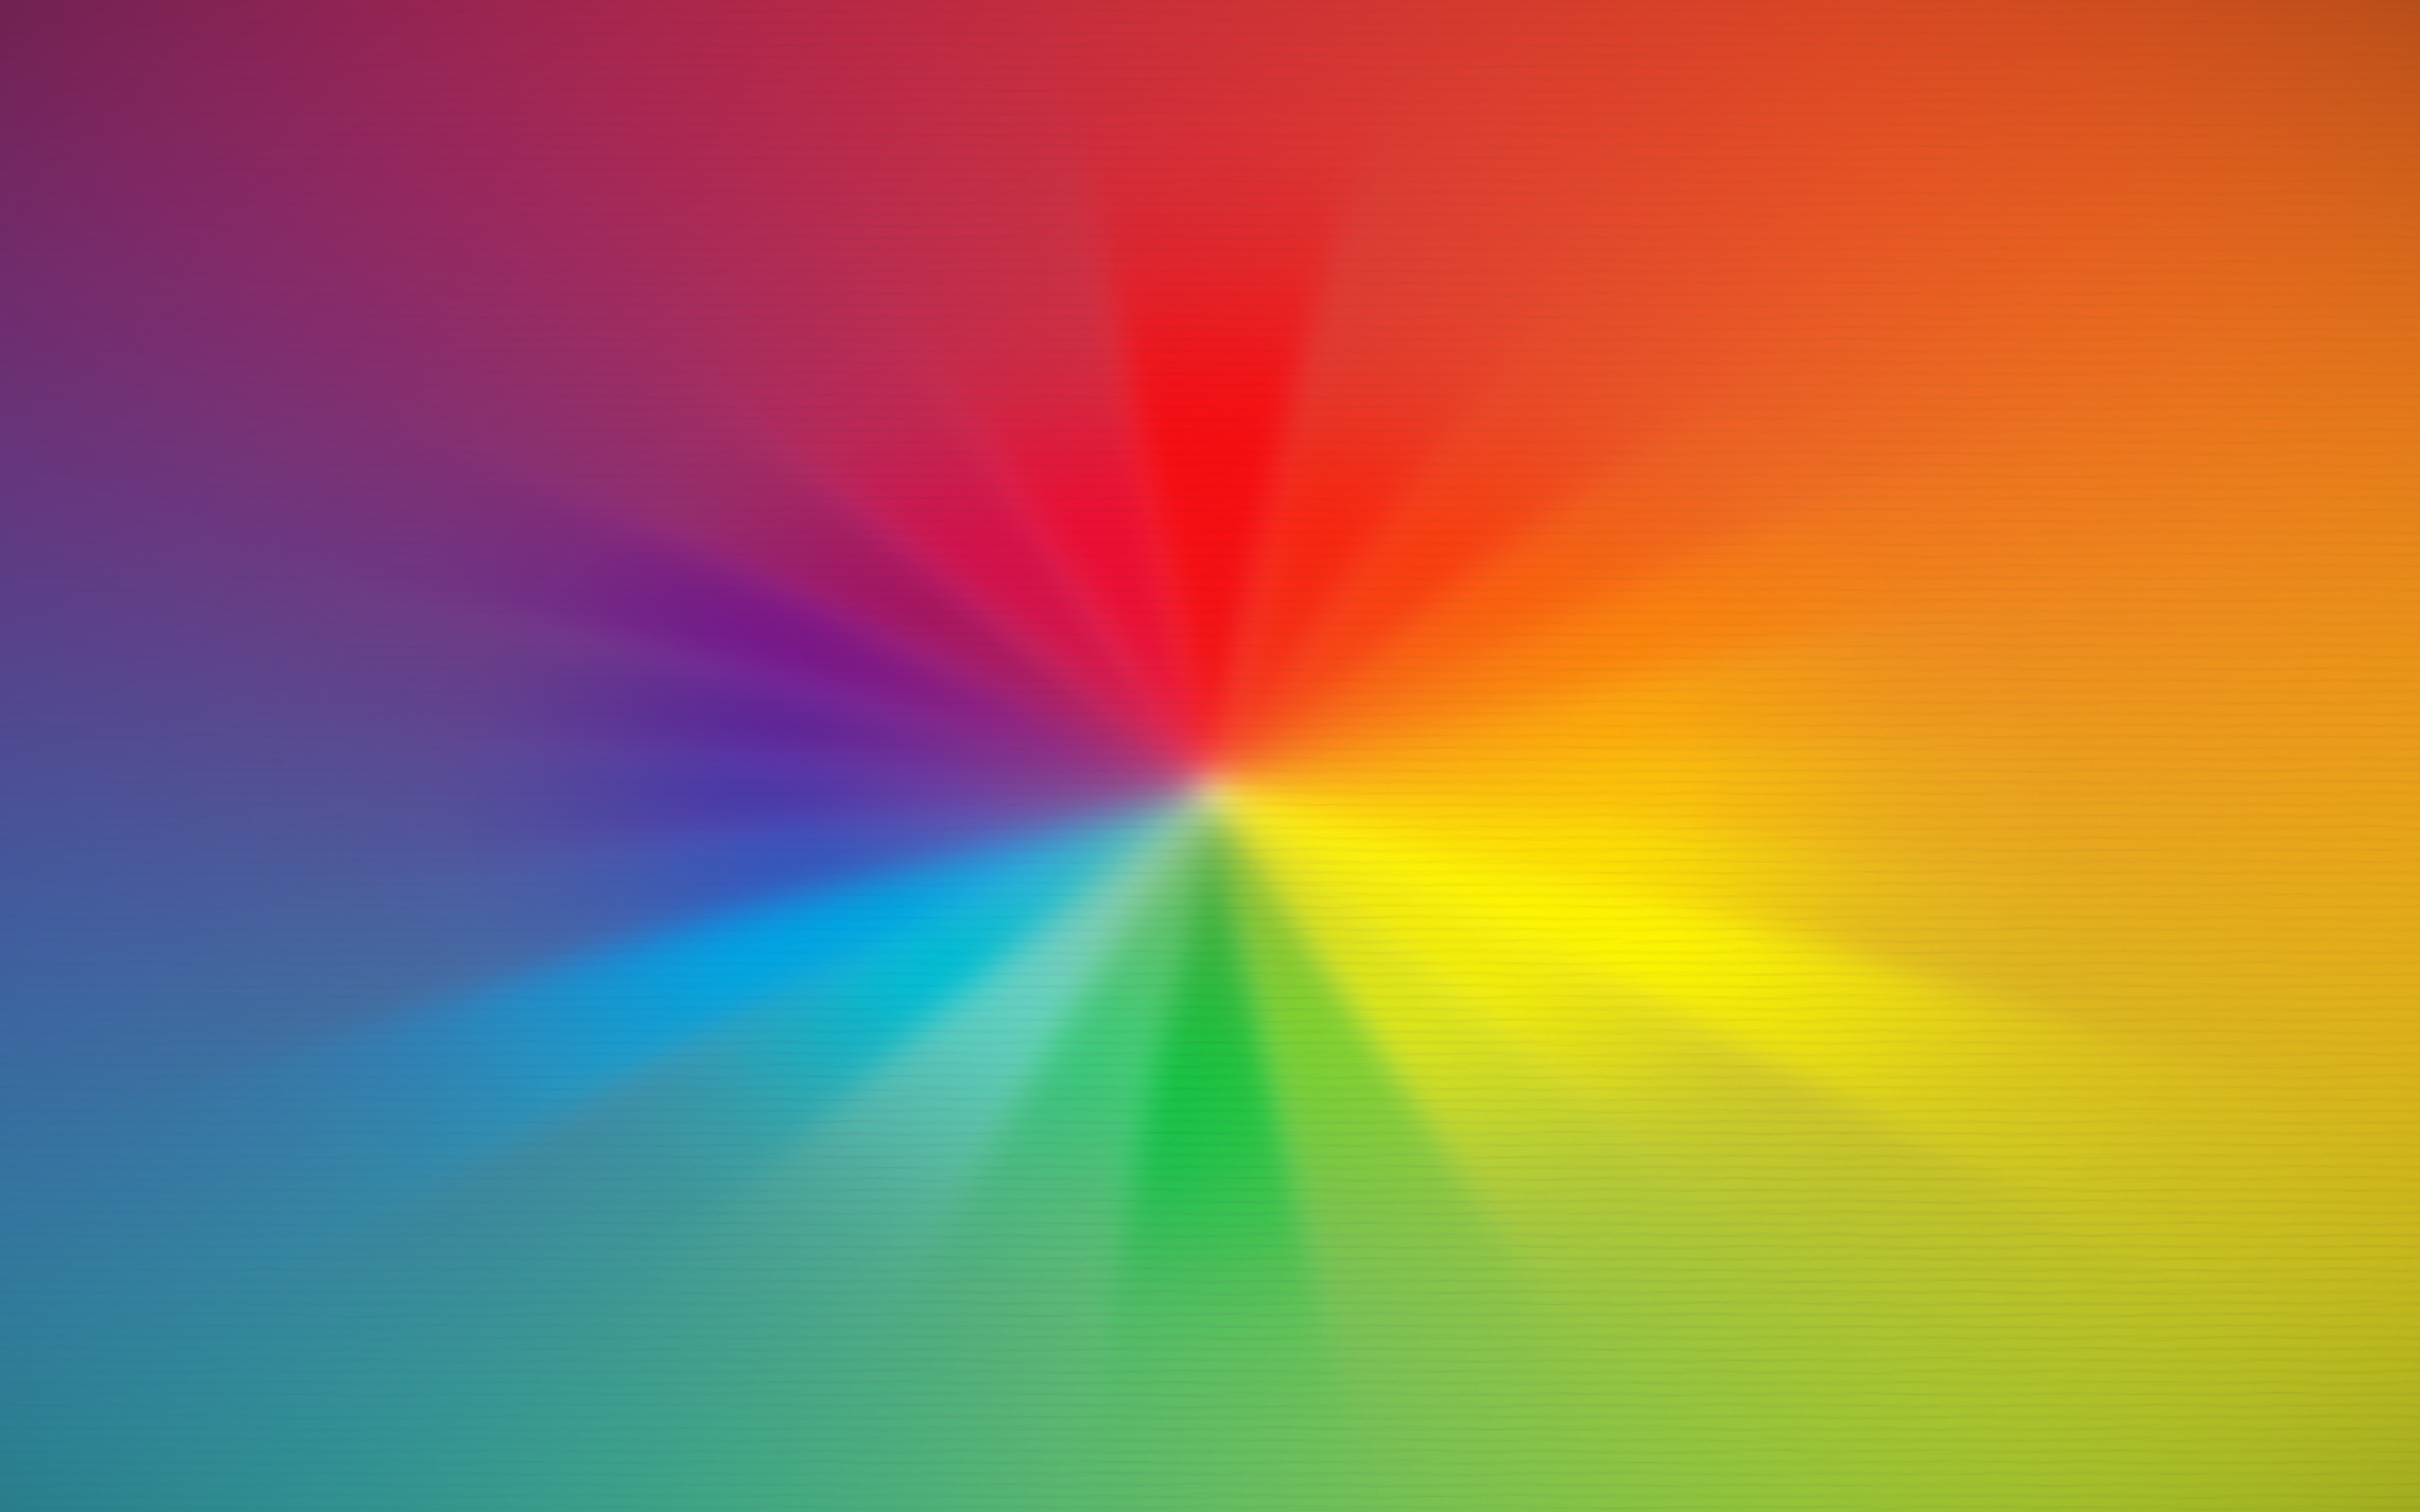 ELegant Rainbow Wallpaper Desktop HD